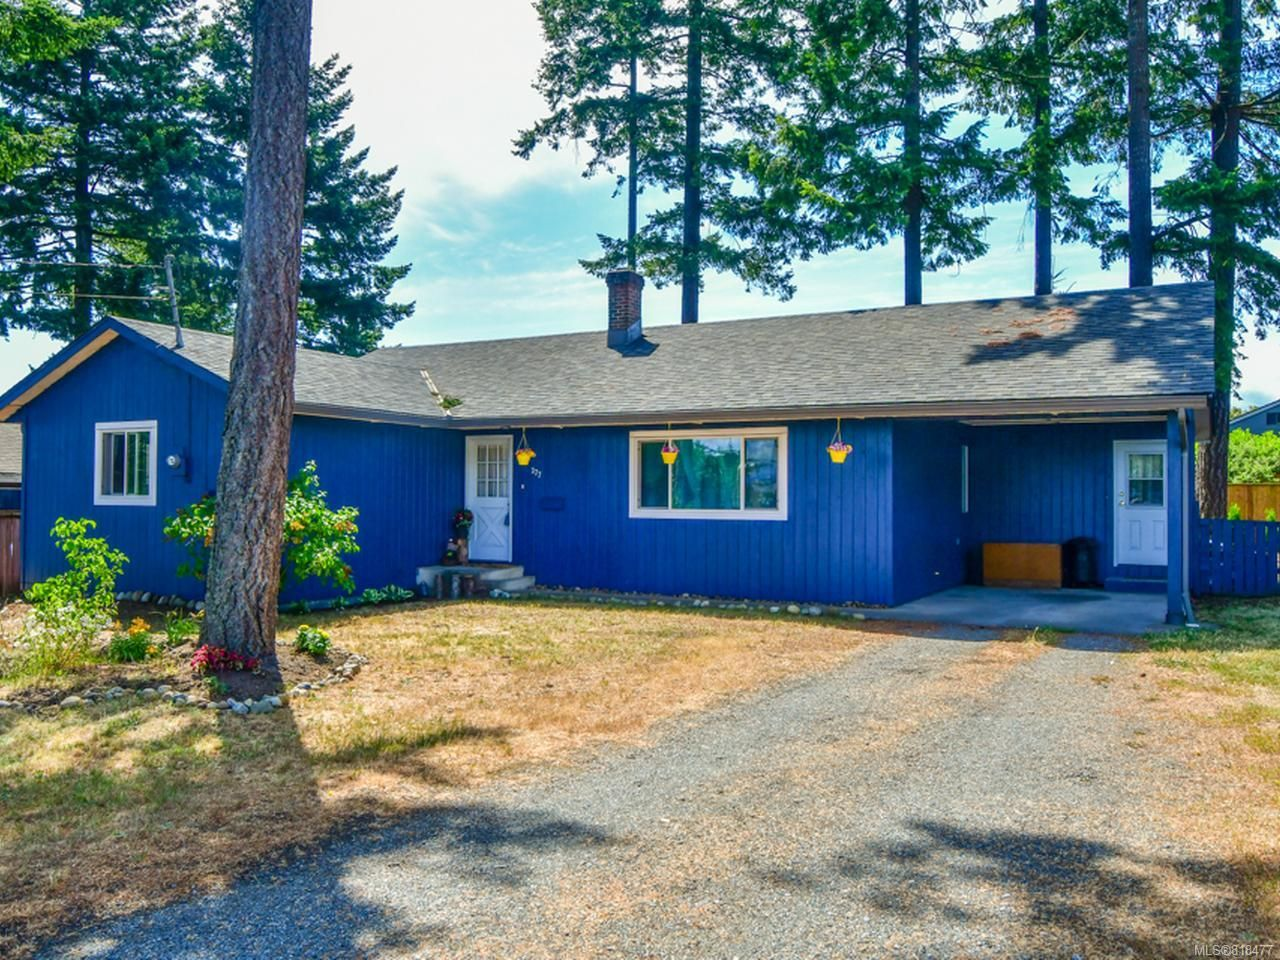 Main Photo: 377 MERECROFT ROAD in CAMPBELL RIVER: CR Campbell River Central House for sale (Campbell River)  : MLS®# 818477